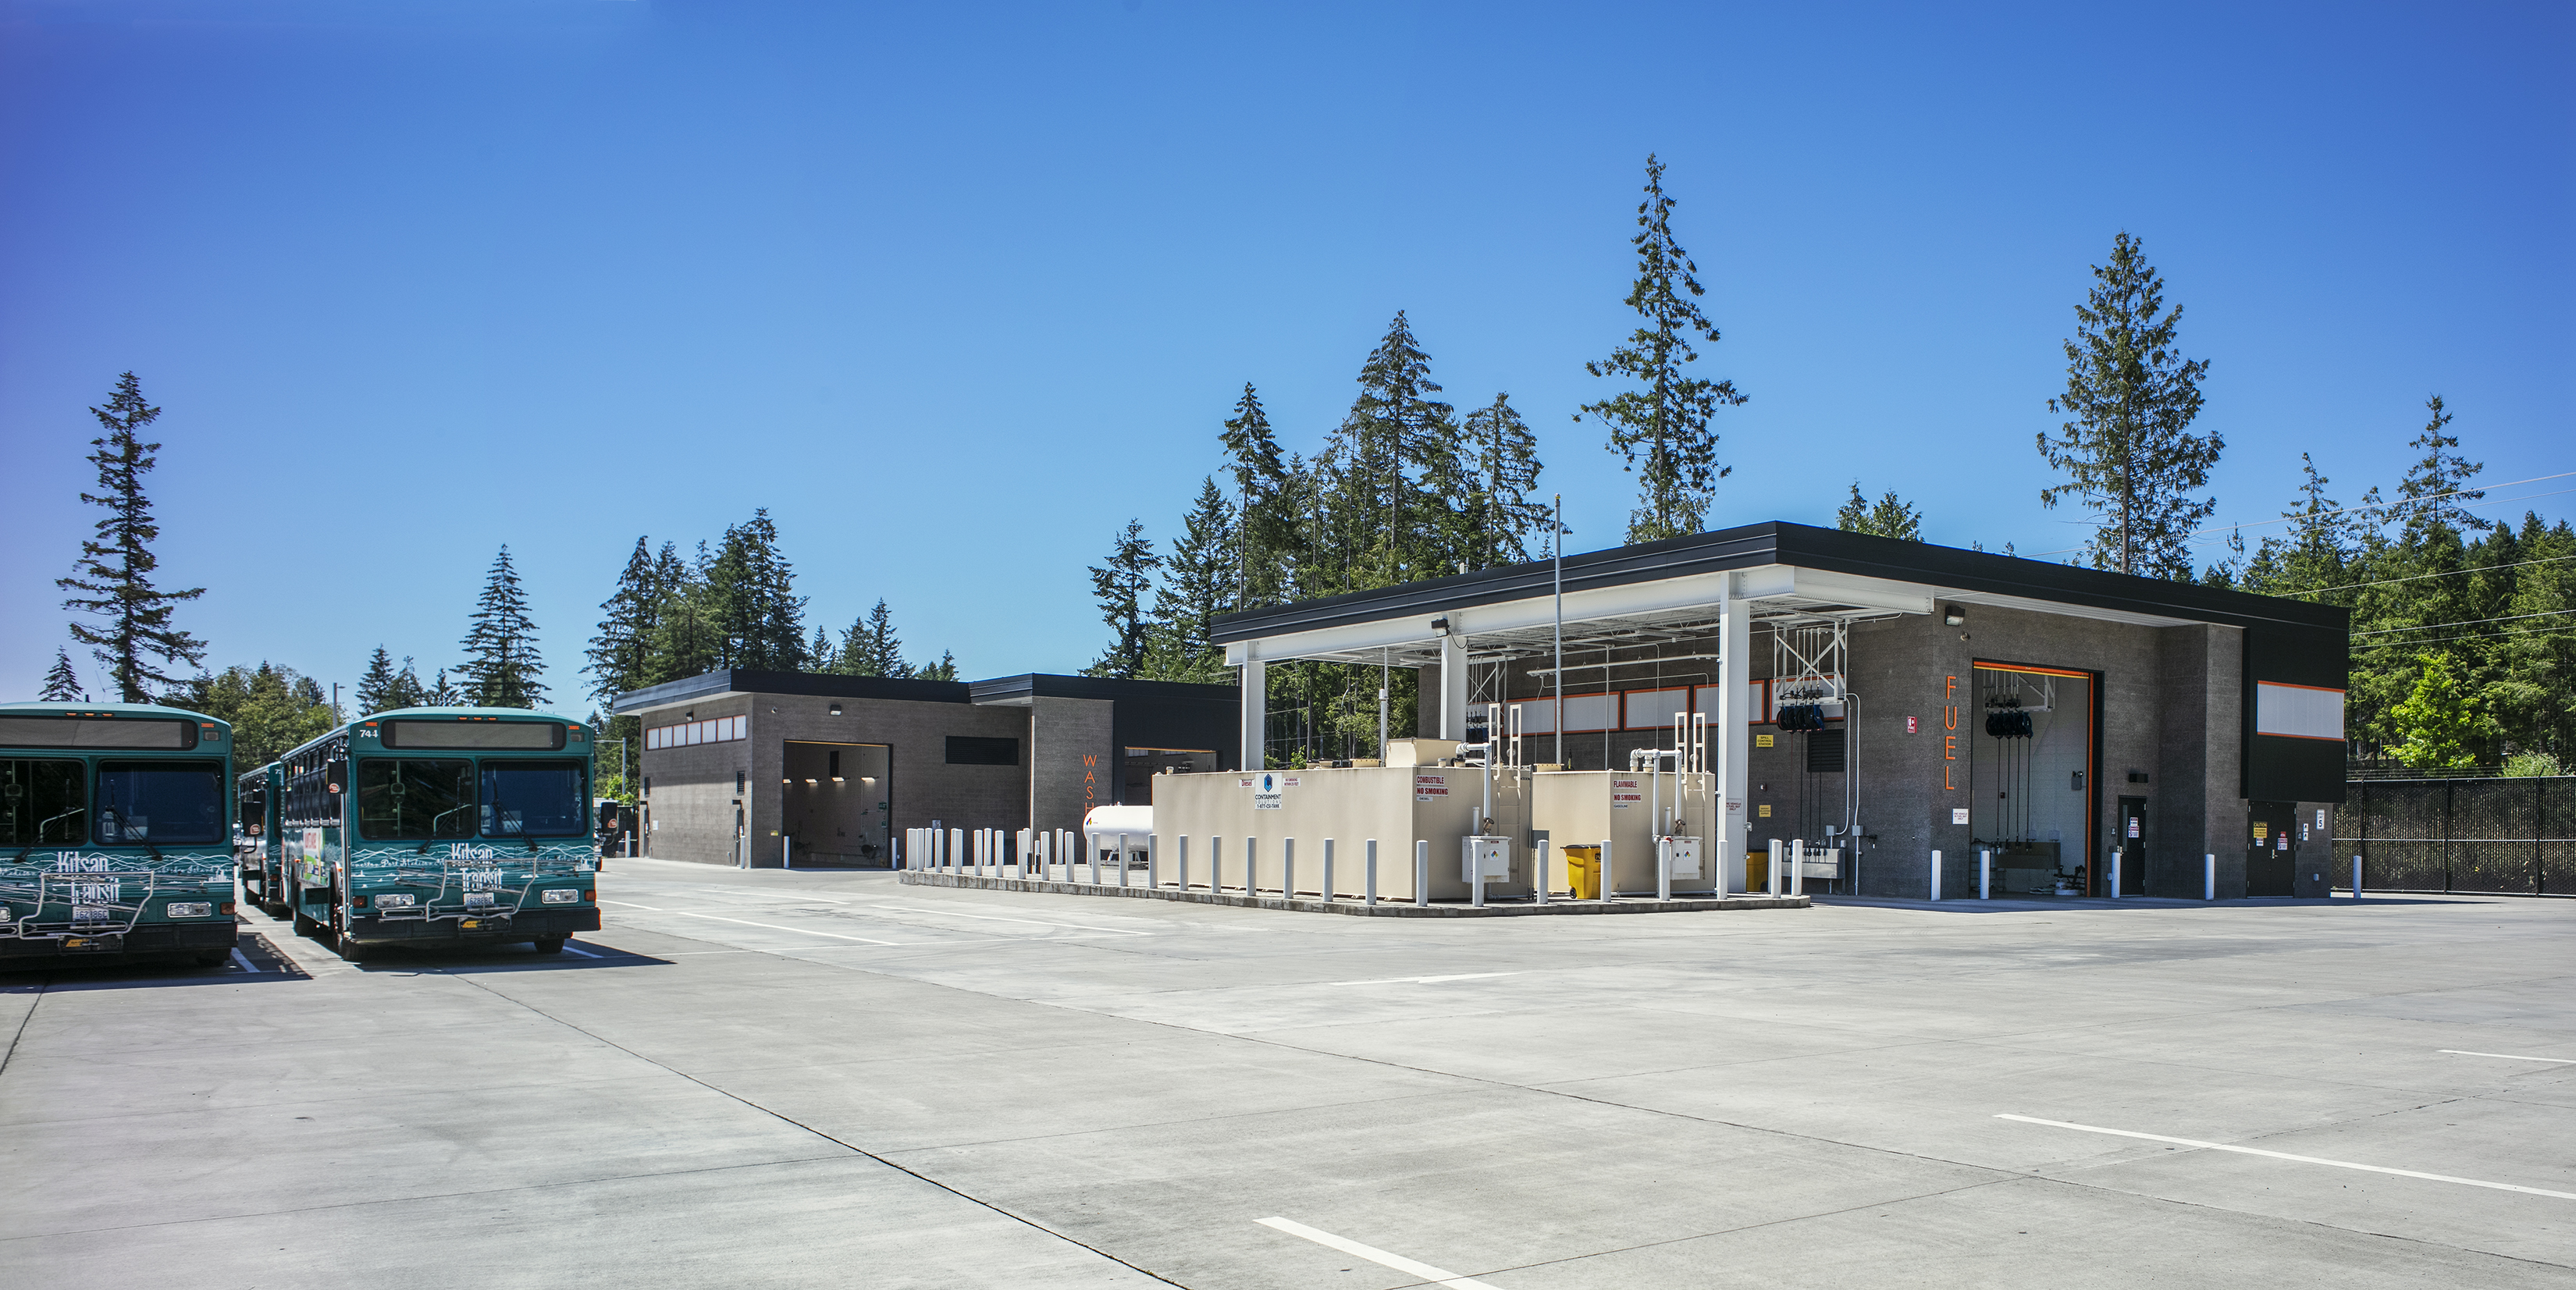 Kitsap Transit North Base and Park and Ride 7